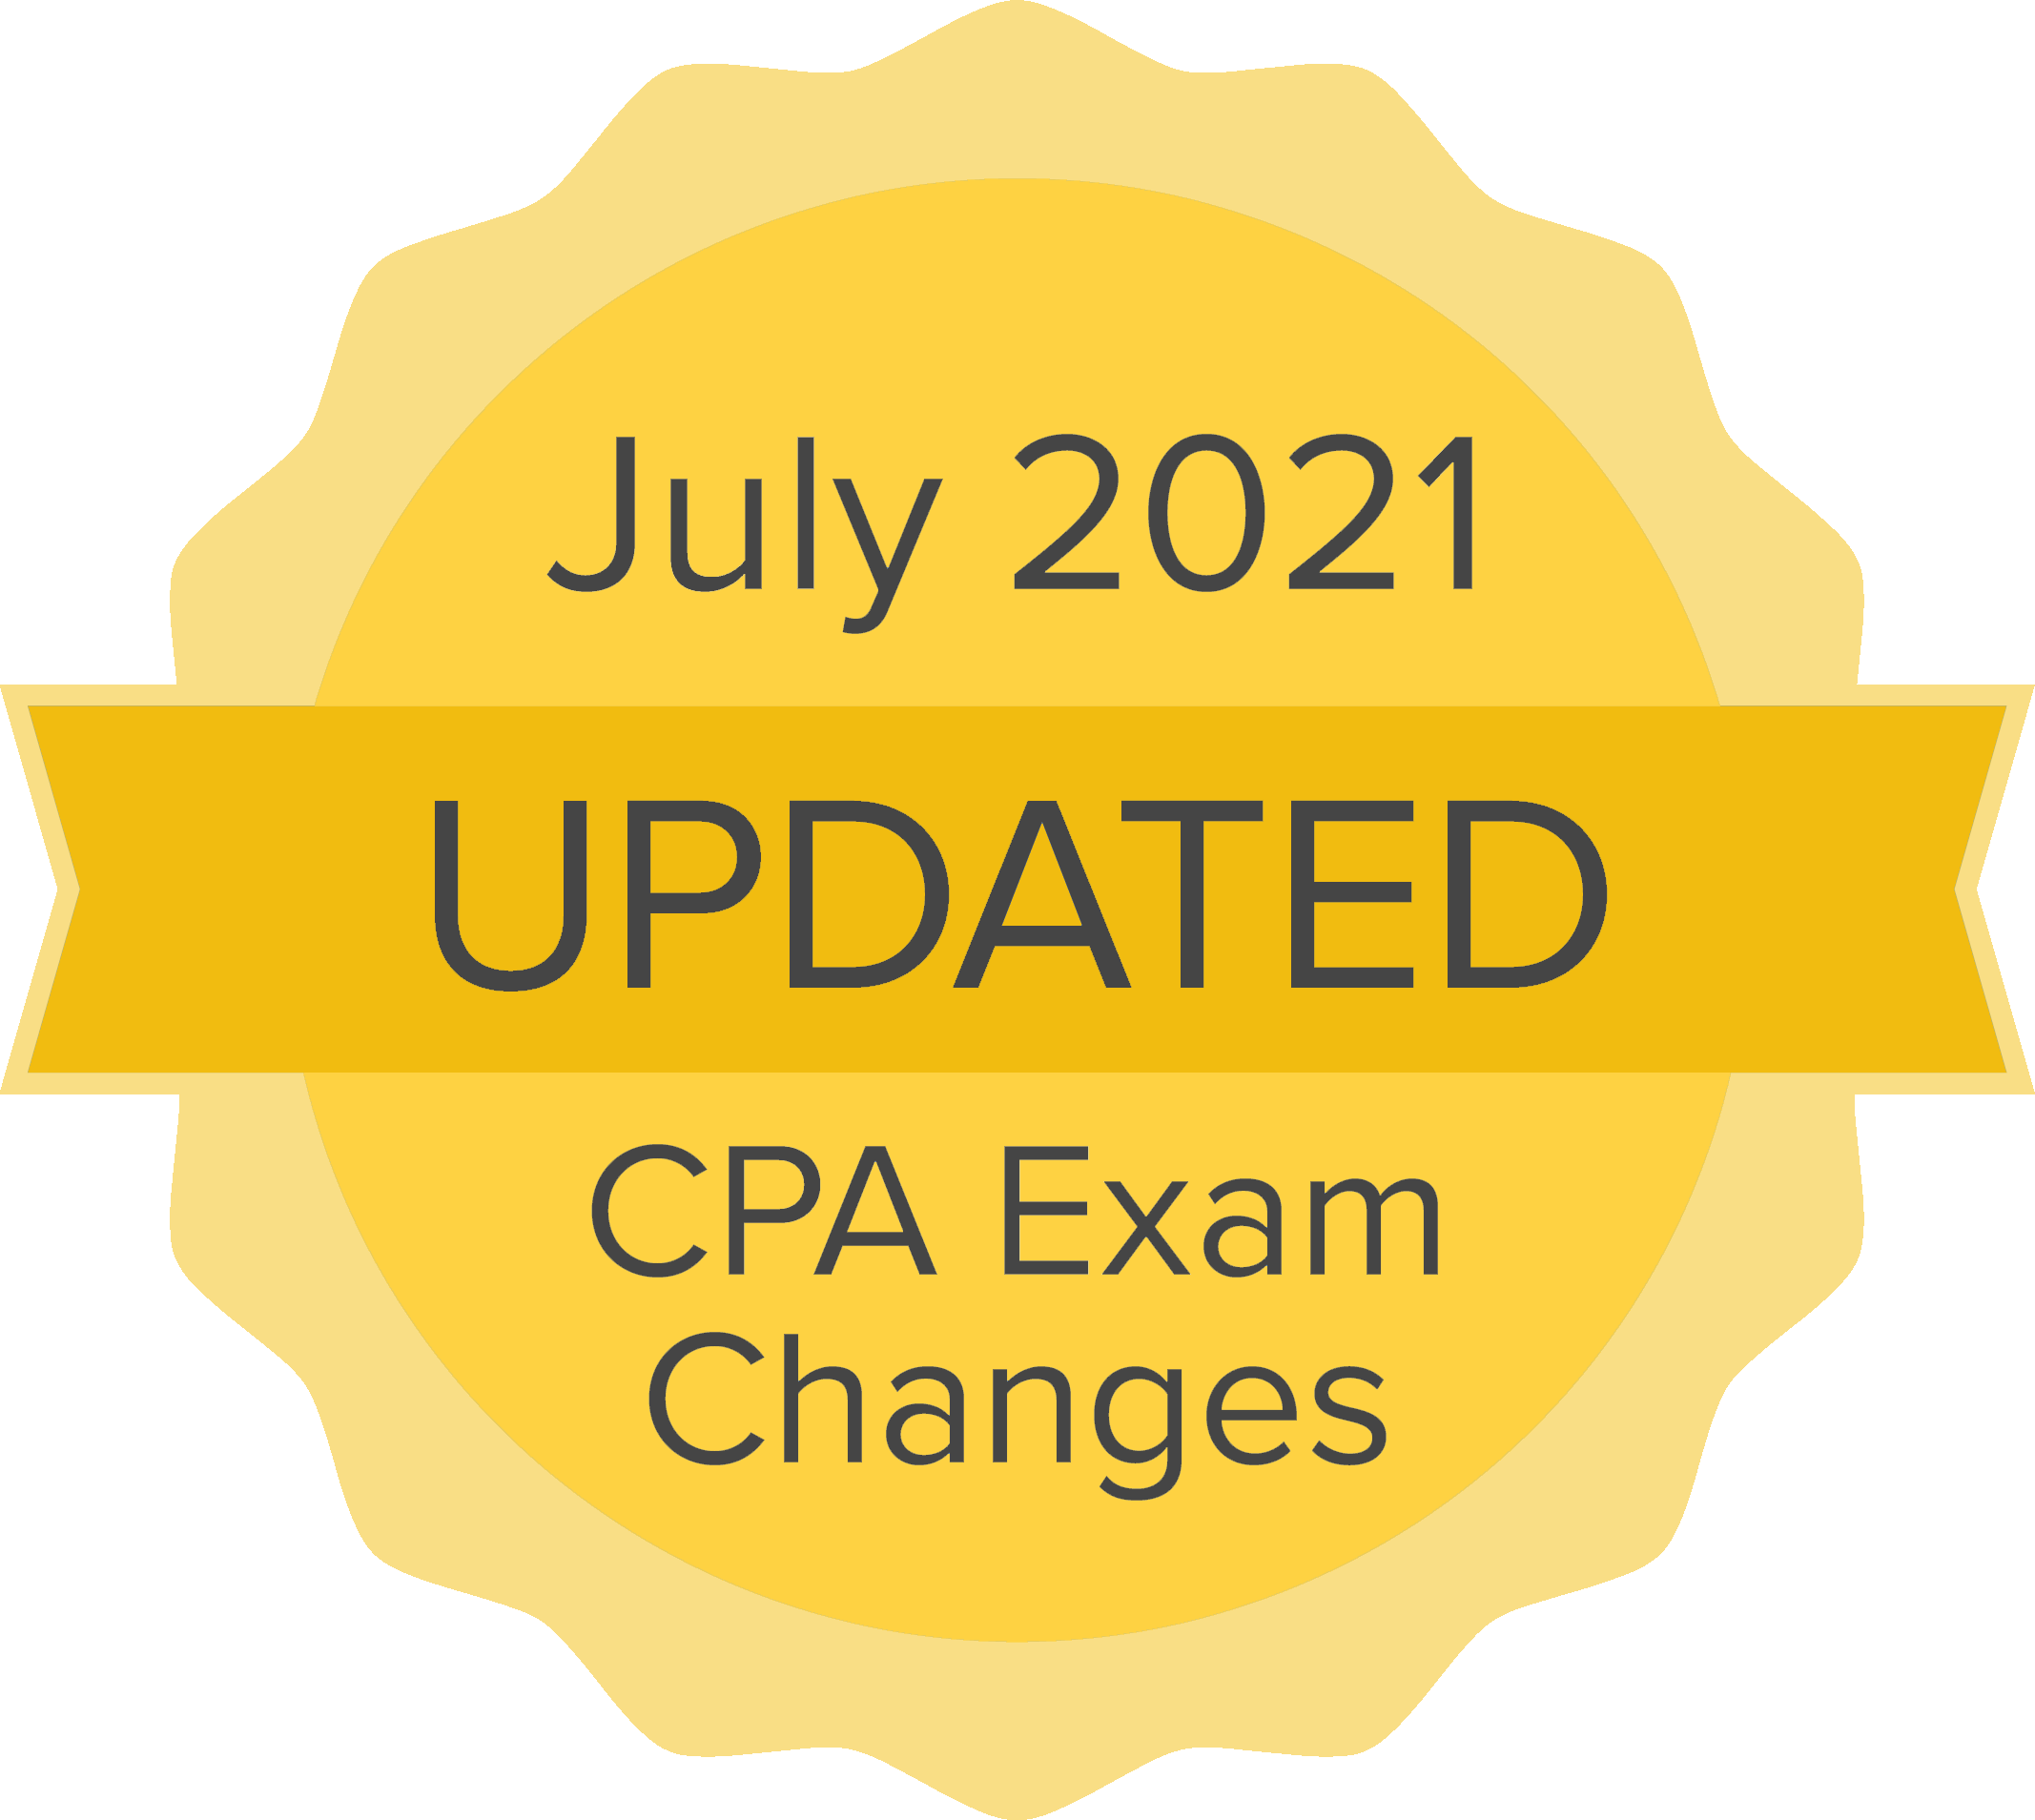 CPA Review Updated for July 2021 Exam Changes